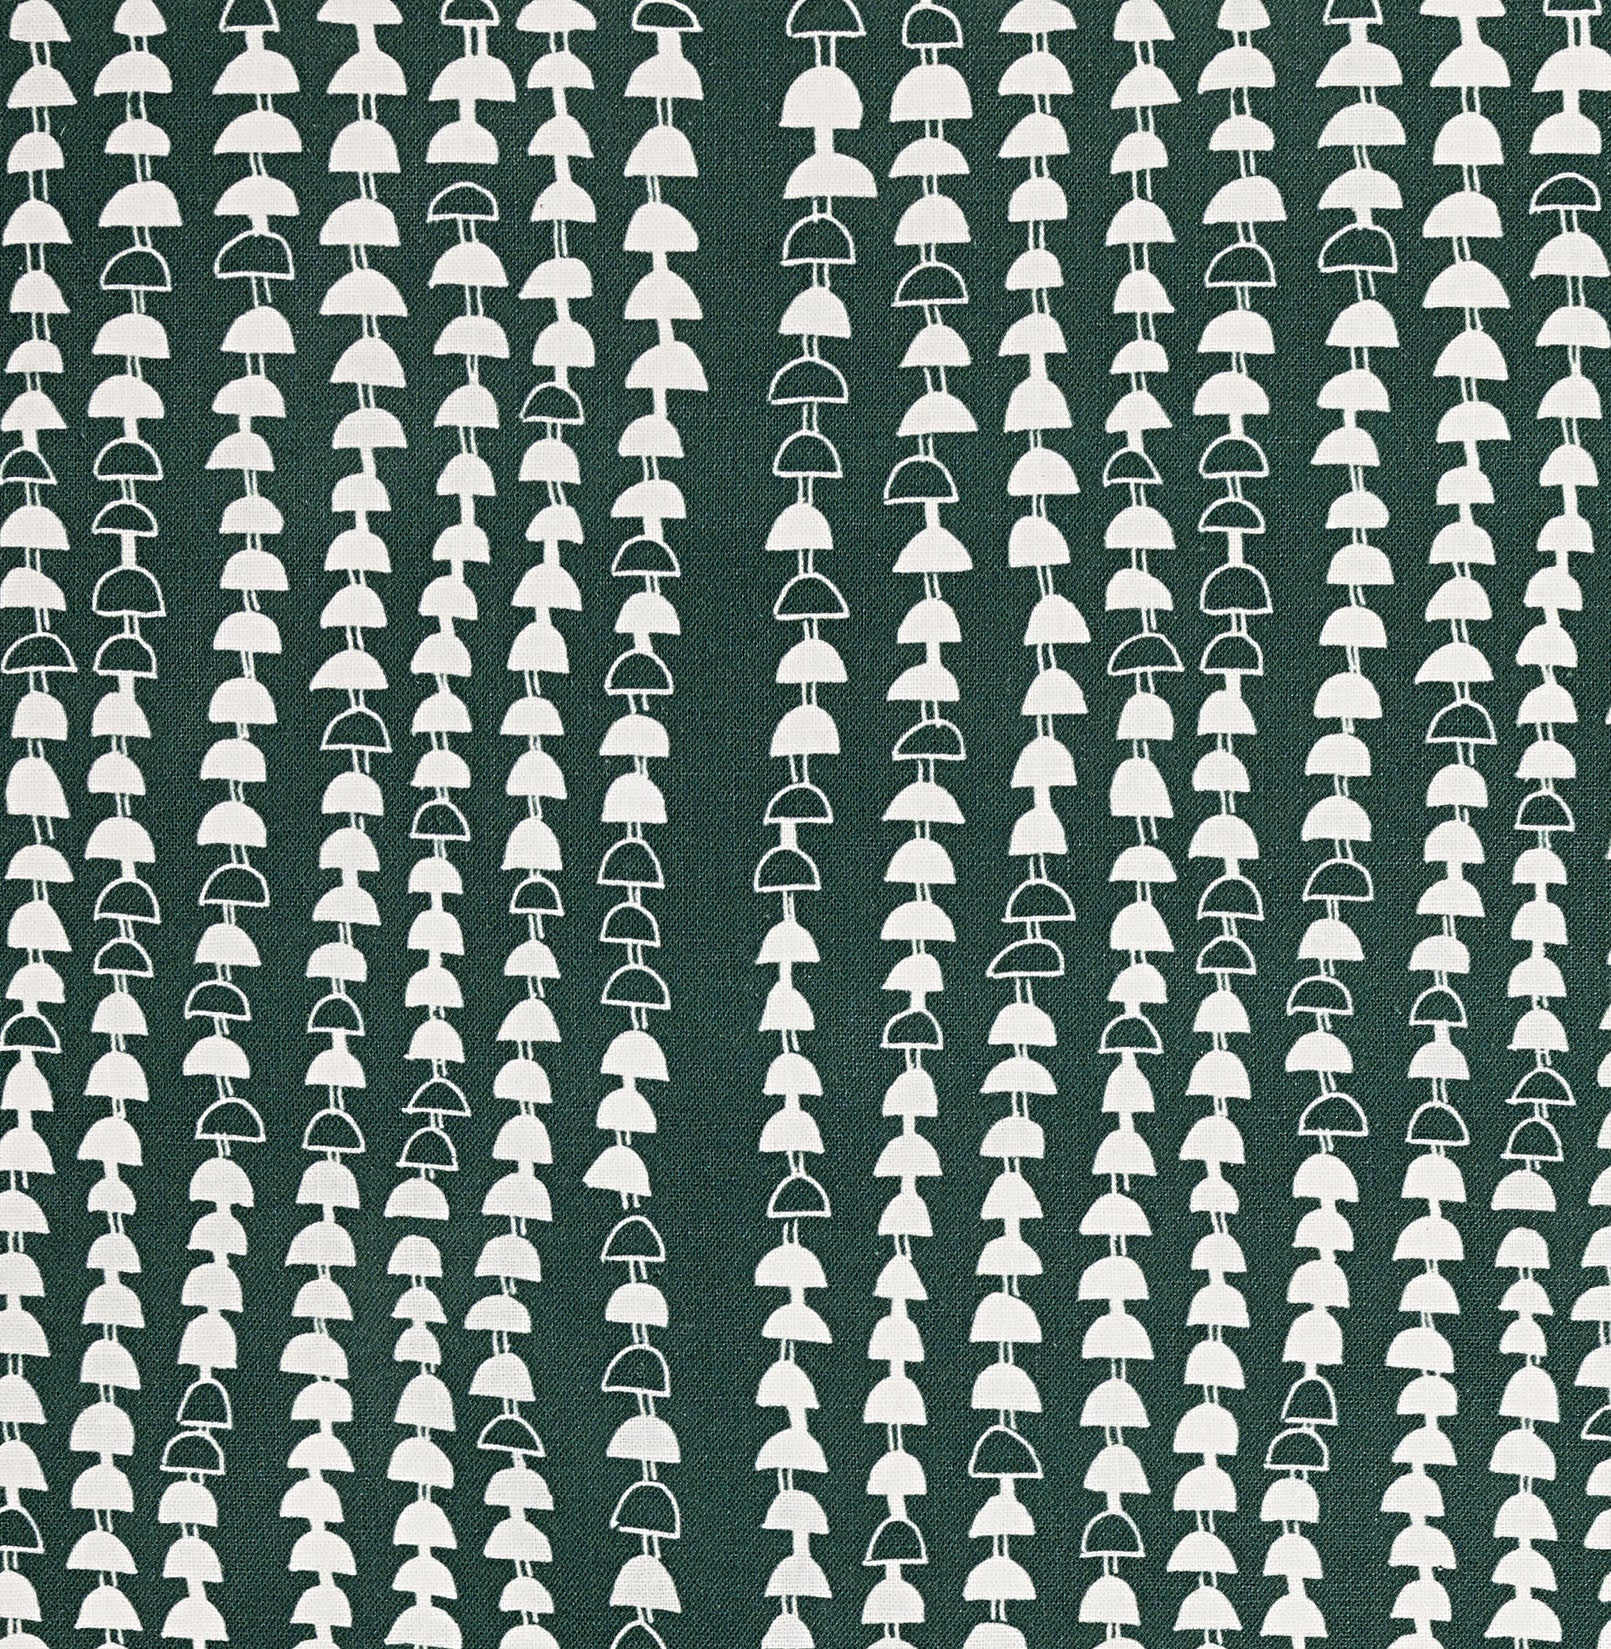 Hopi Graphic Strung Bead Pattern Linen Cotton Home Decor Fabric for curtains, blinds, upholstery in Dark Moss Green Forest Canada USA